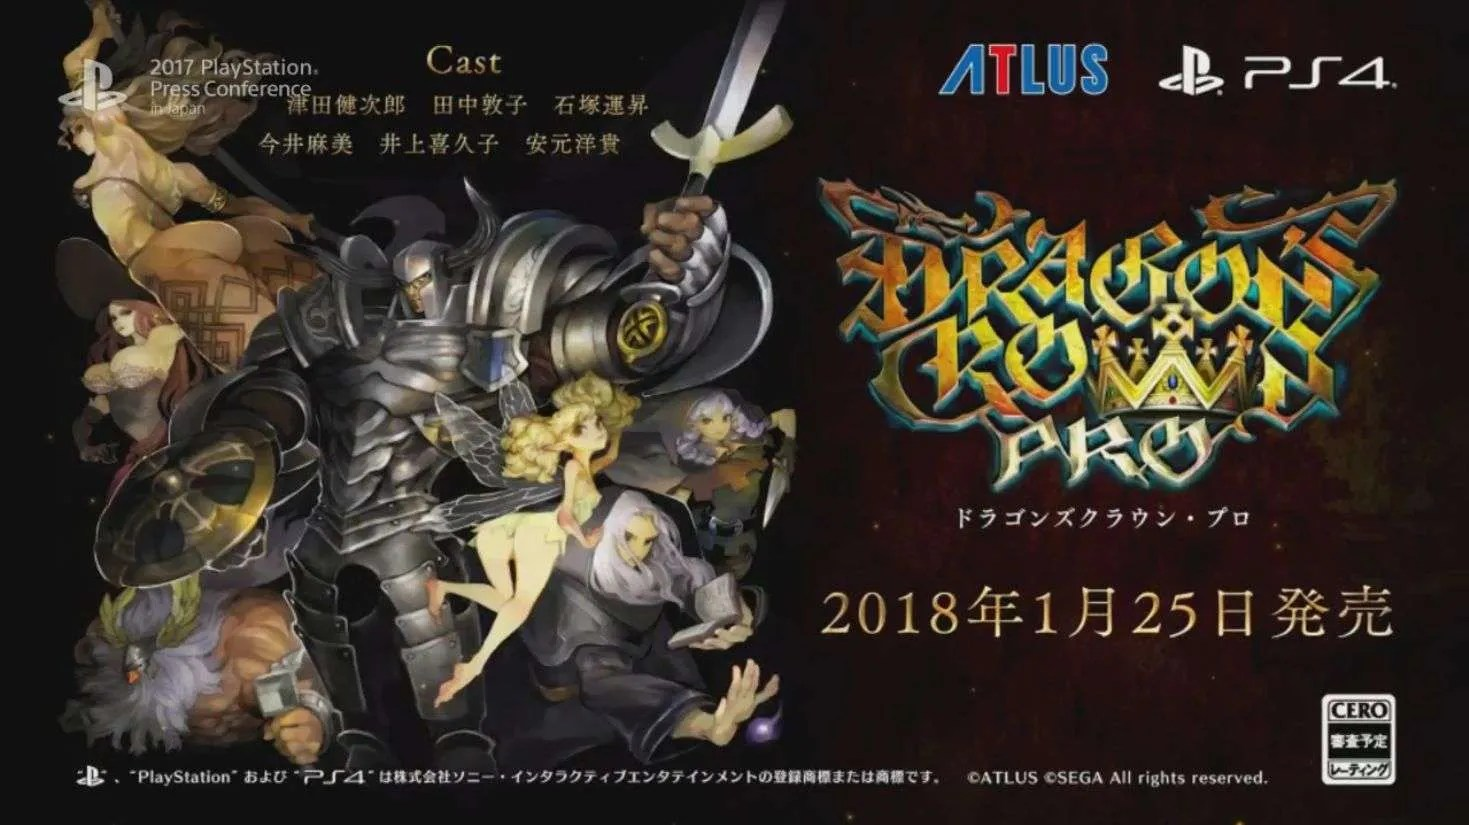 Persona 4 The Animation Wallpaper Dragon S Crown Pro Announced For Ps4 Release In Japan On